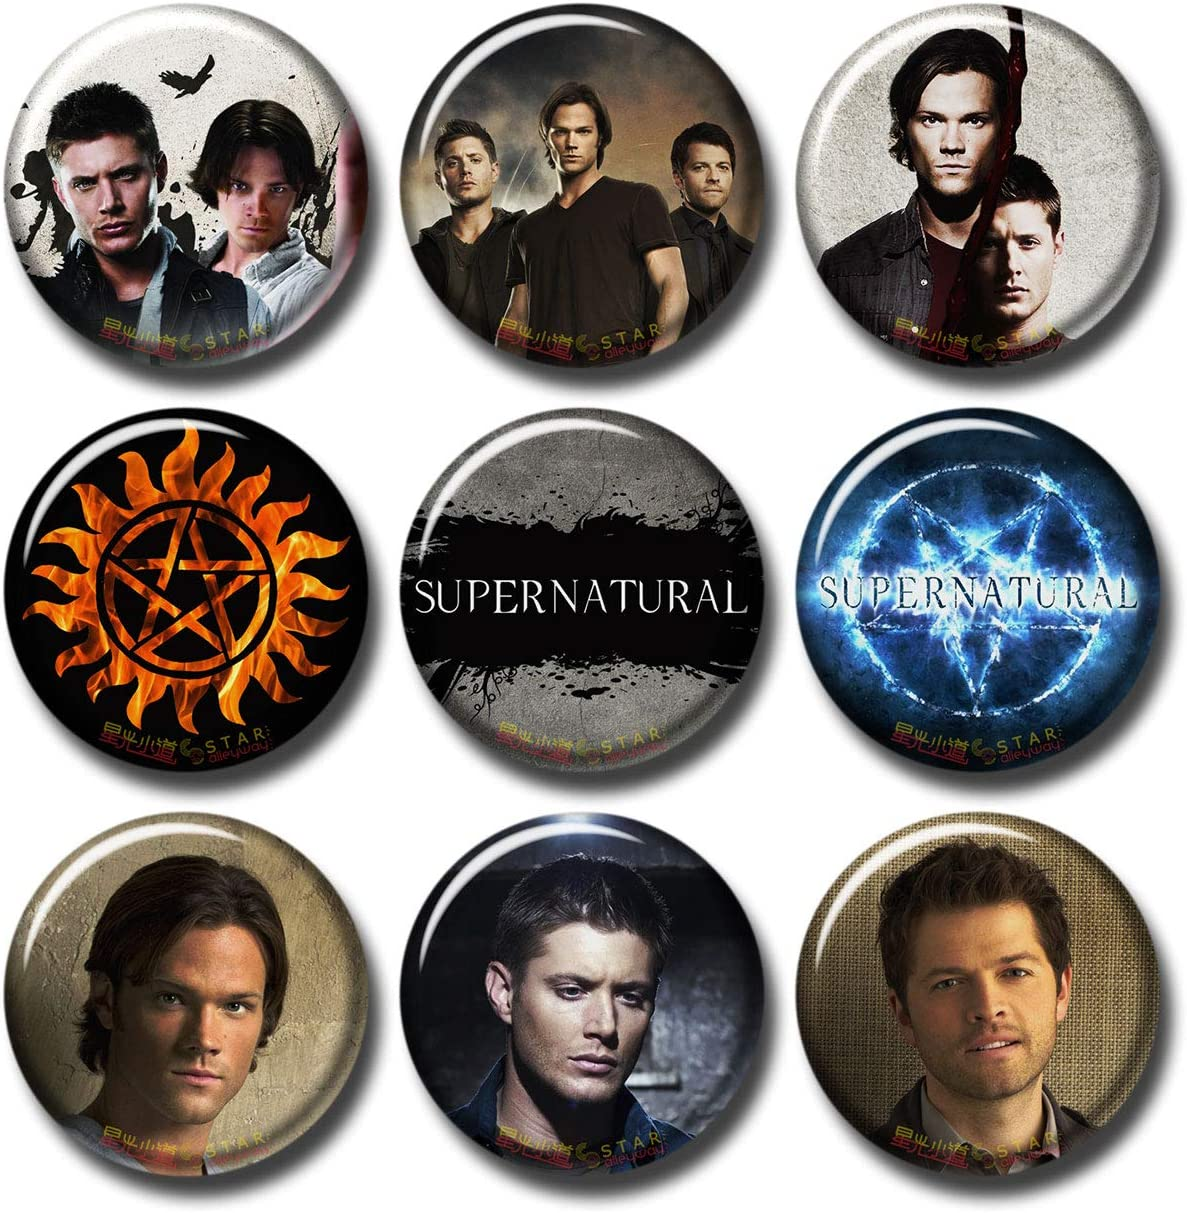 Supernatural 9 pcs Button Fridge Magnets Set Pack TV Series 253-P003 Demon Logos Dean Sam Winchester Castiel,Party Favors Supplies Gifts Home Decor (Round 1.5 inch|3.7cm)